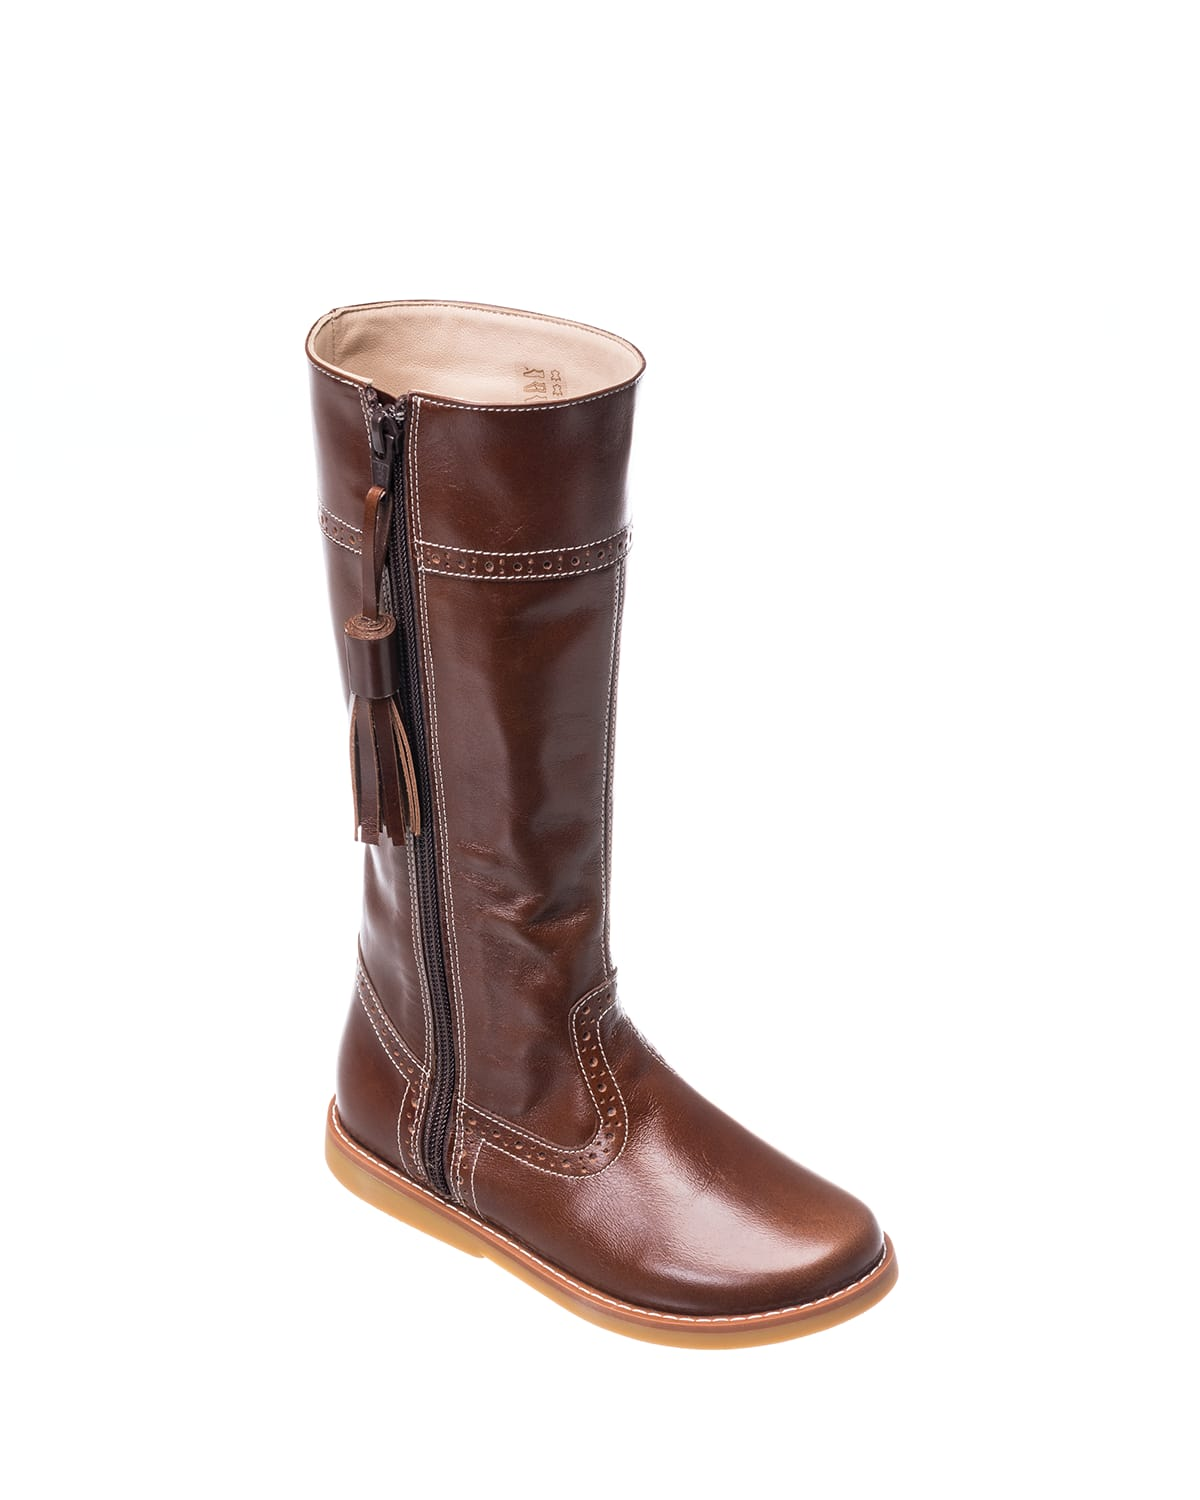 Girl's Leather Riding Boots